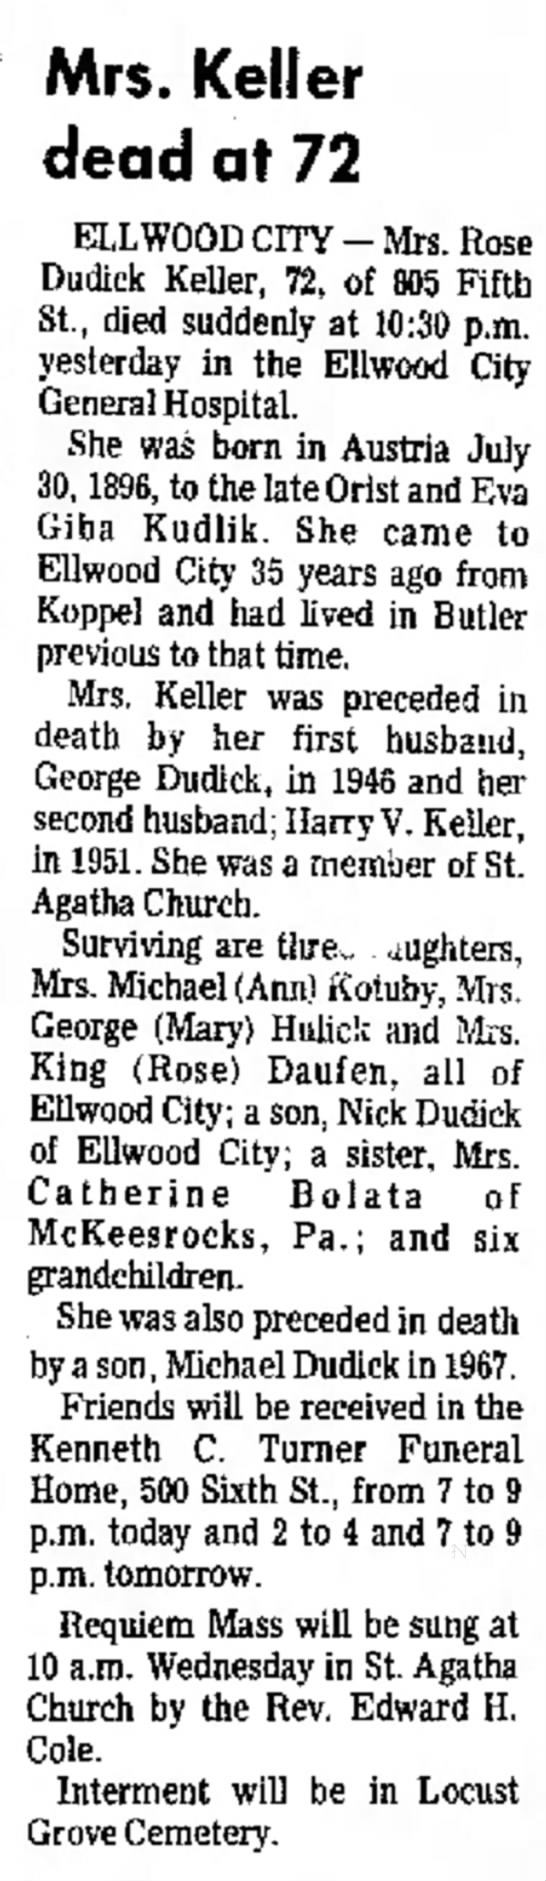 New Castle News (New Castle, PA) 18 NOV 1968 Monday Page 15 - Mrs. Keller dead at 72 ELLWOOD CITY - Mrs. Rose...